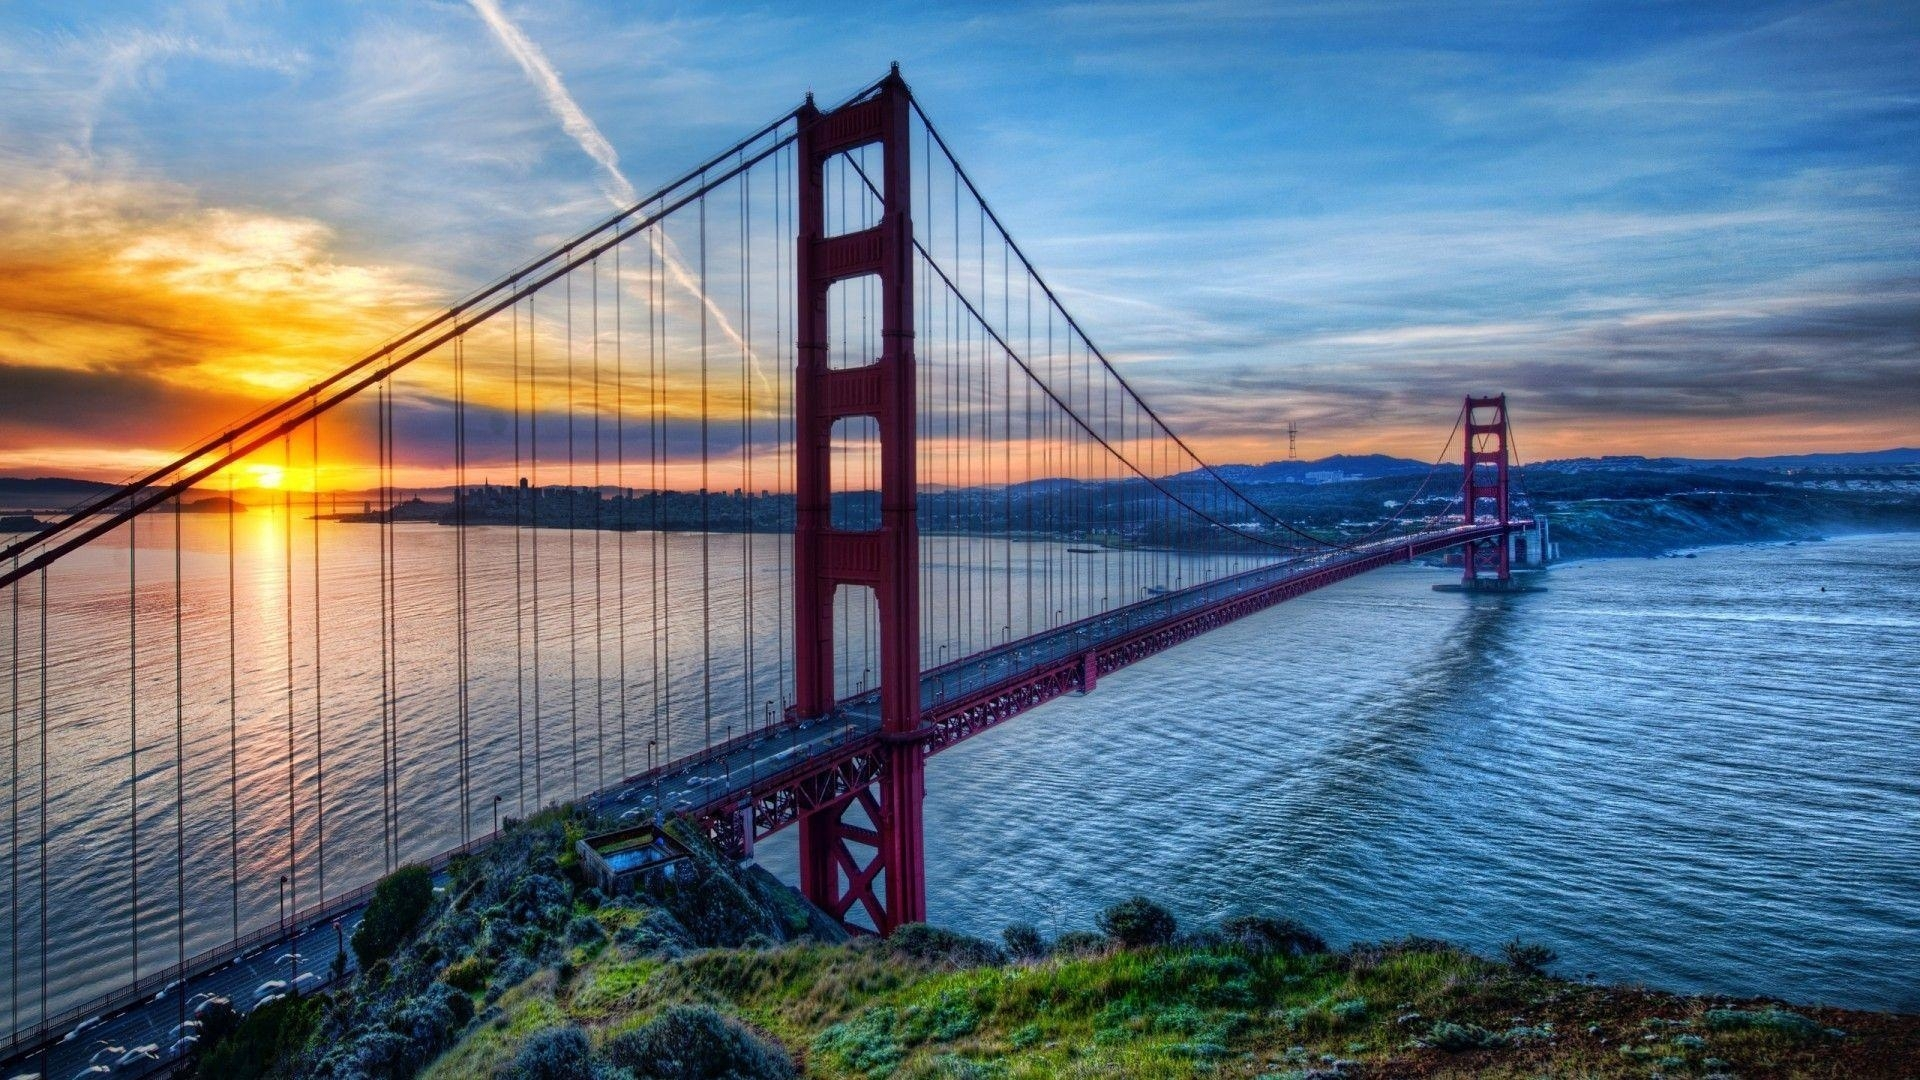 golden gate bridge wallpapers - wallpaper cave